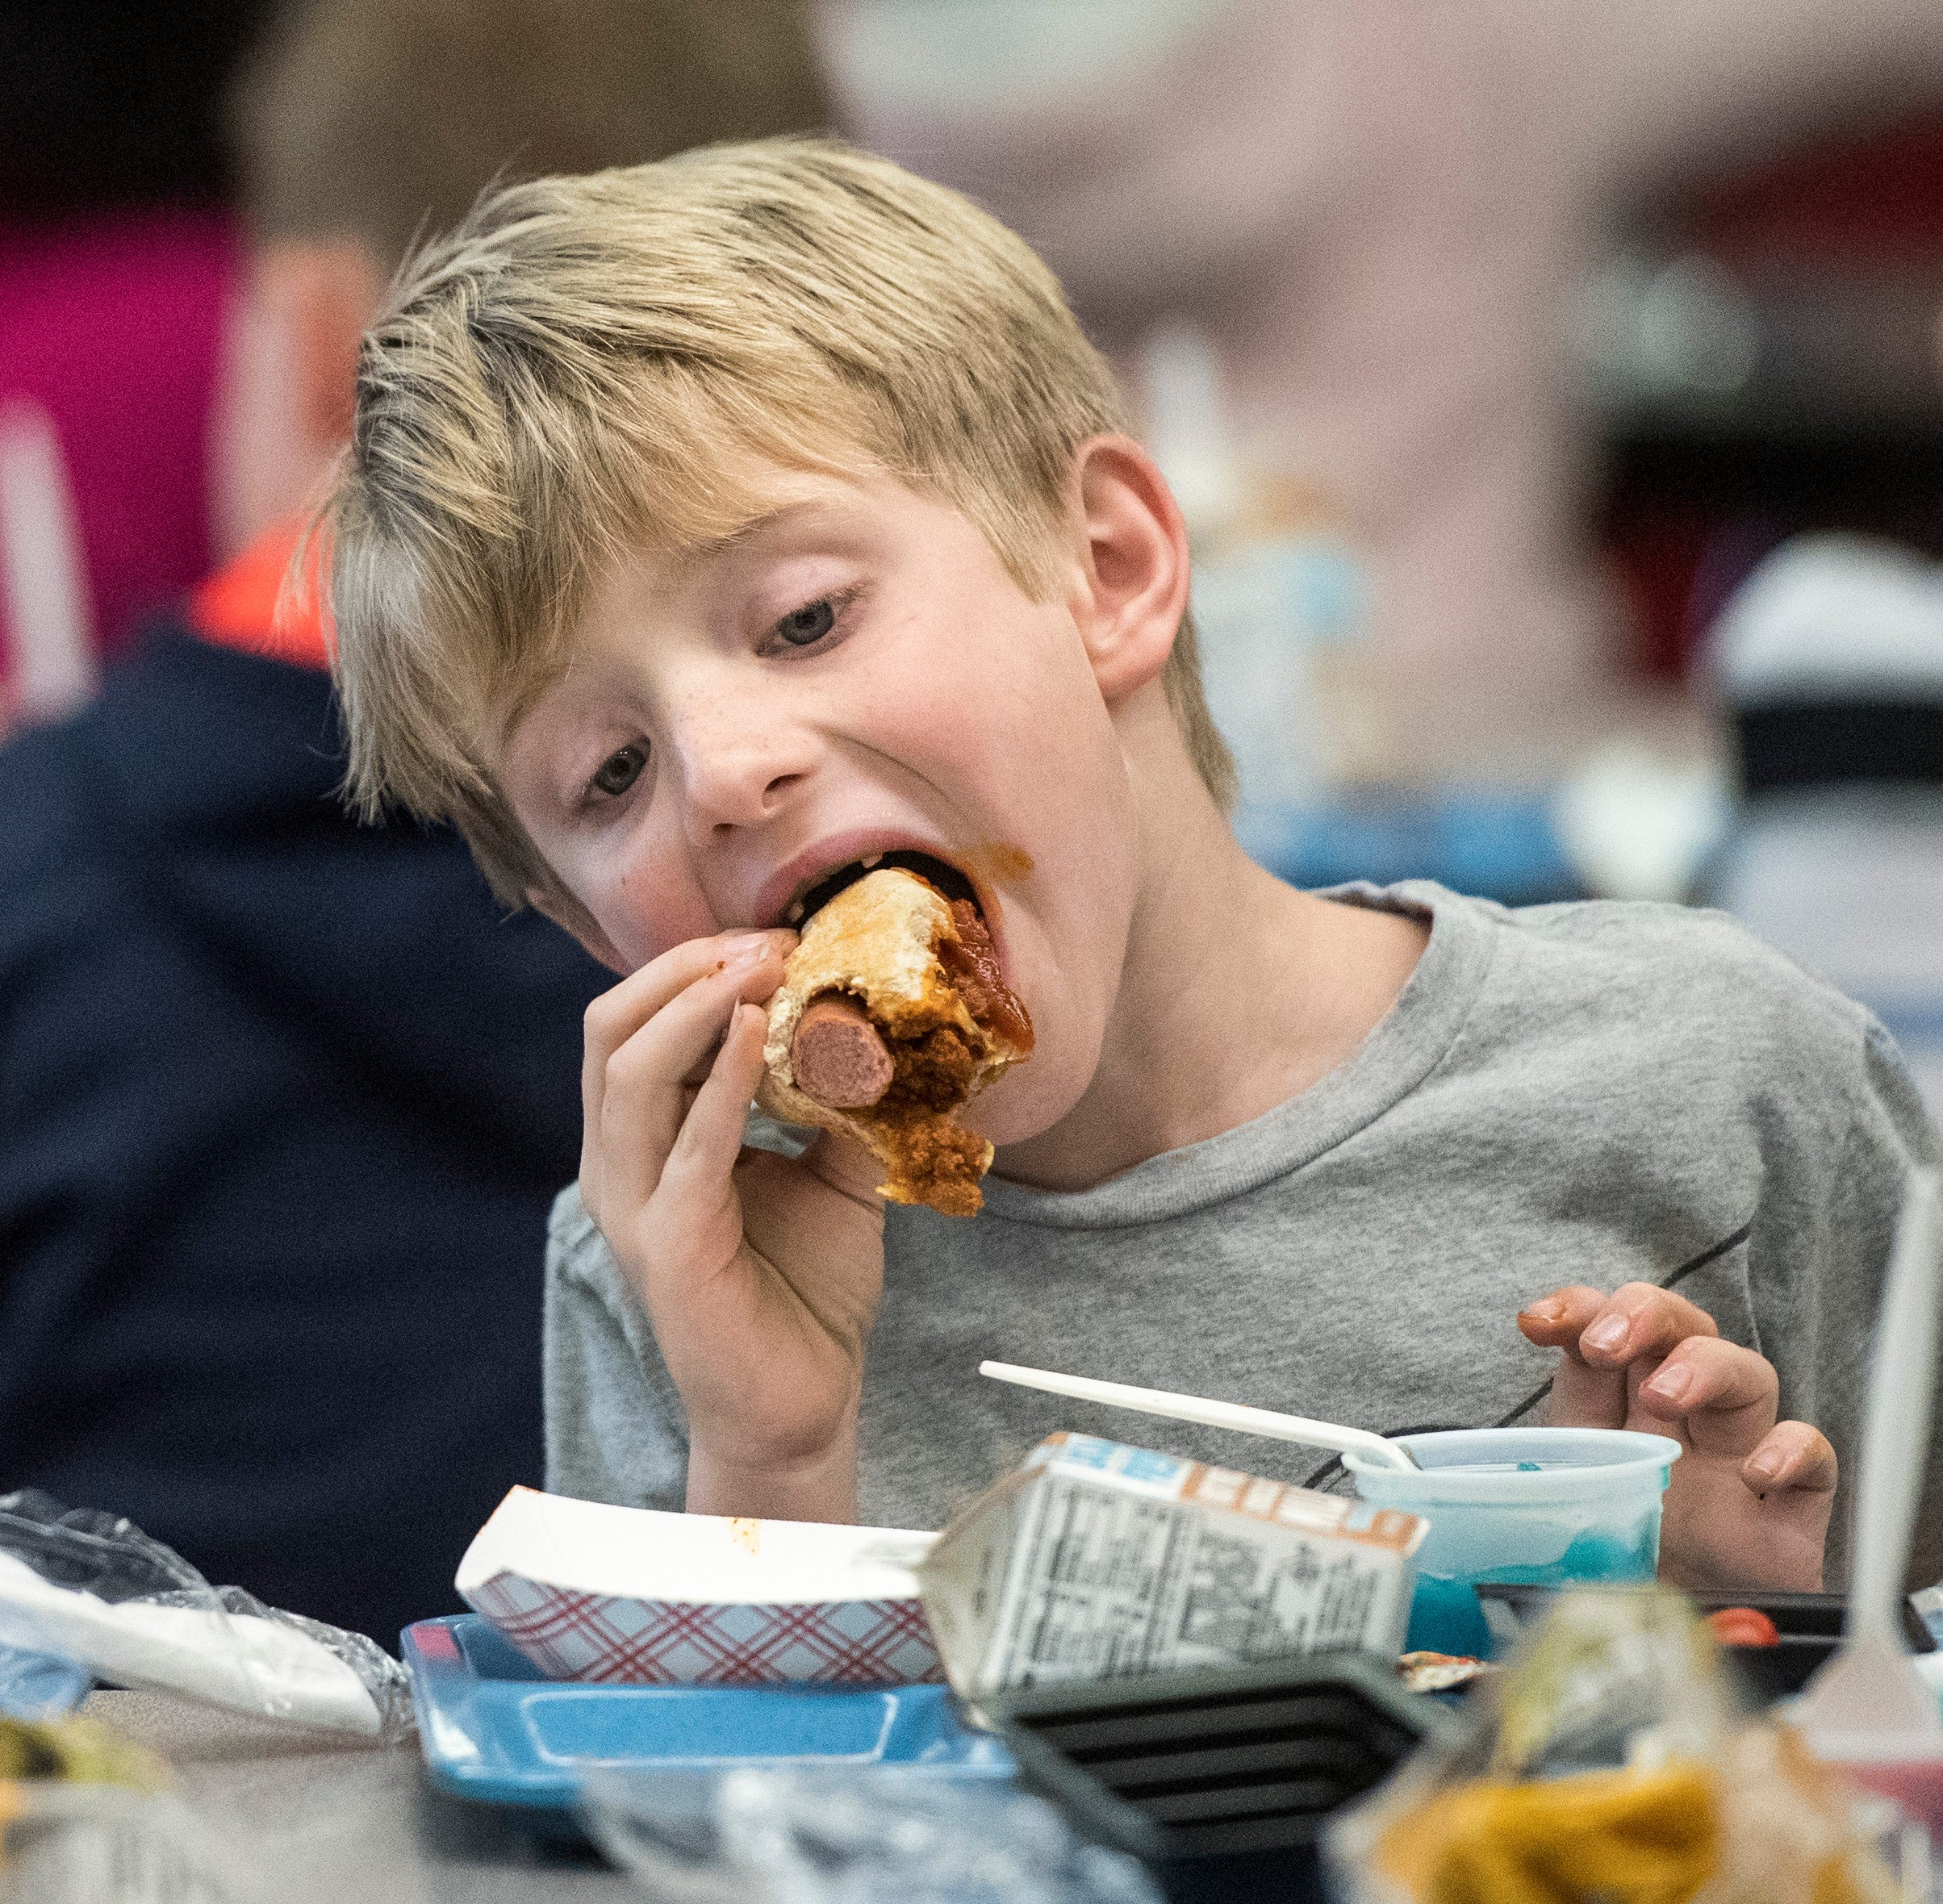 National School Lunch Week focuses on what's to love in school lunches